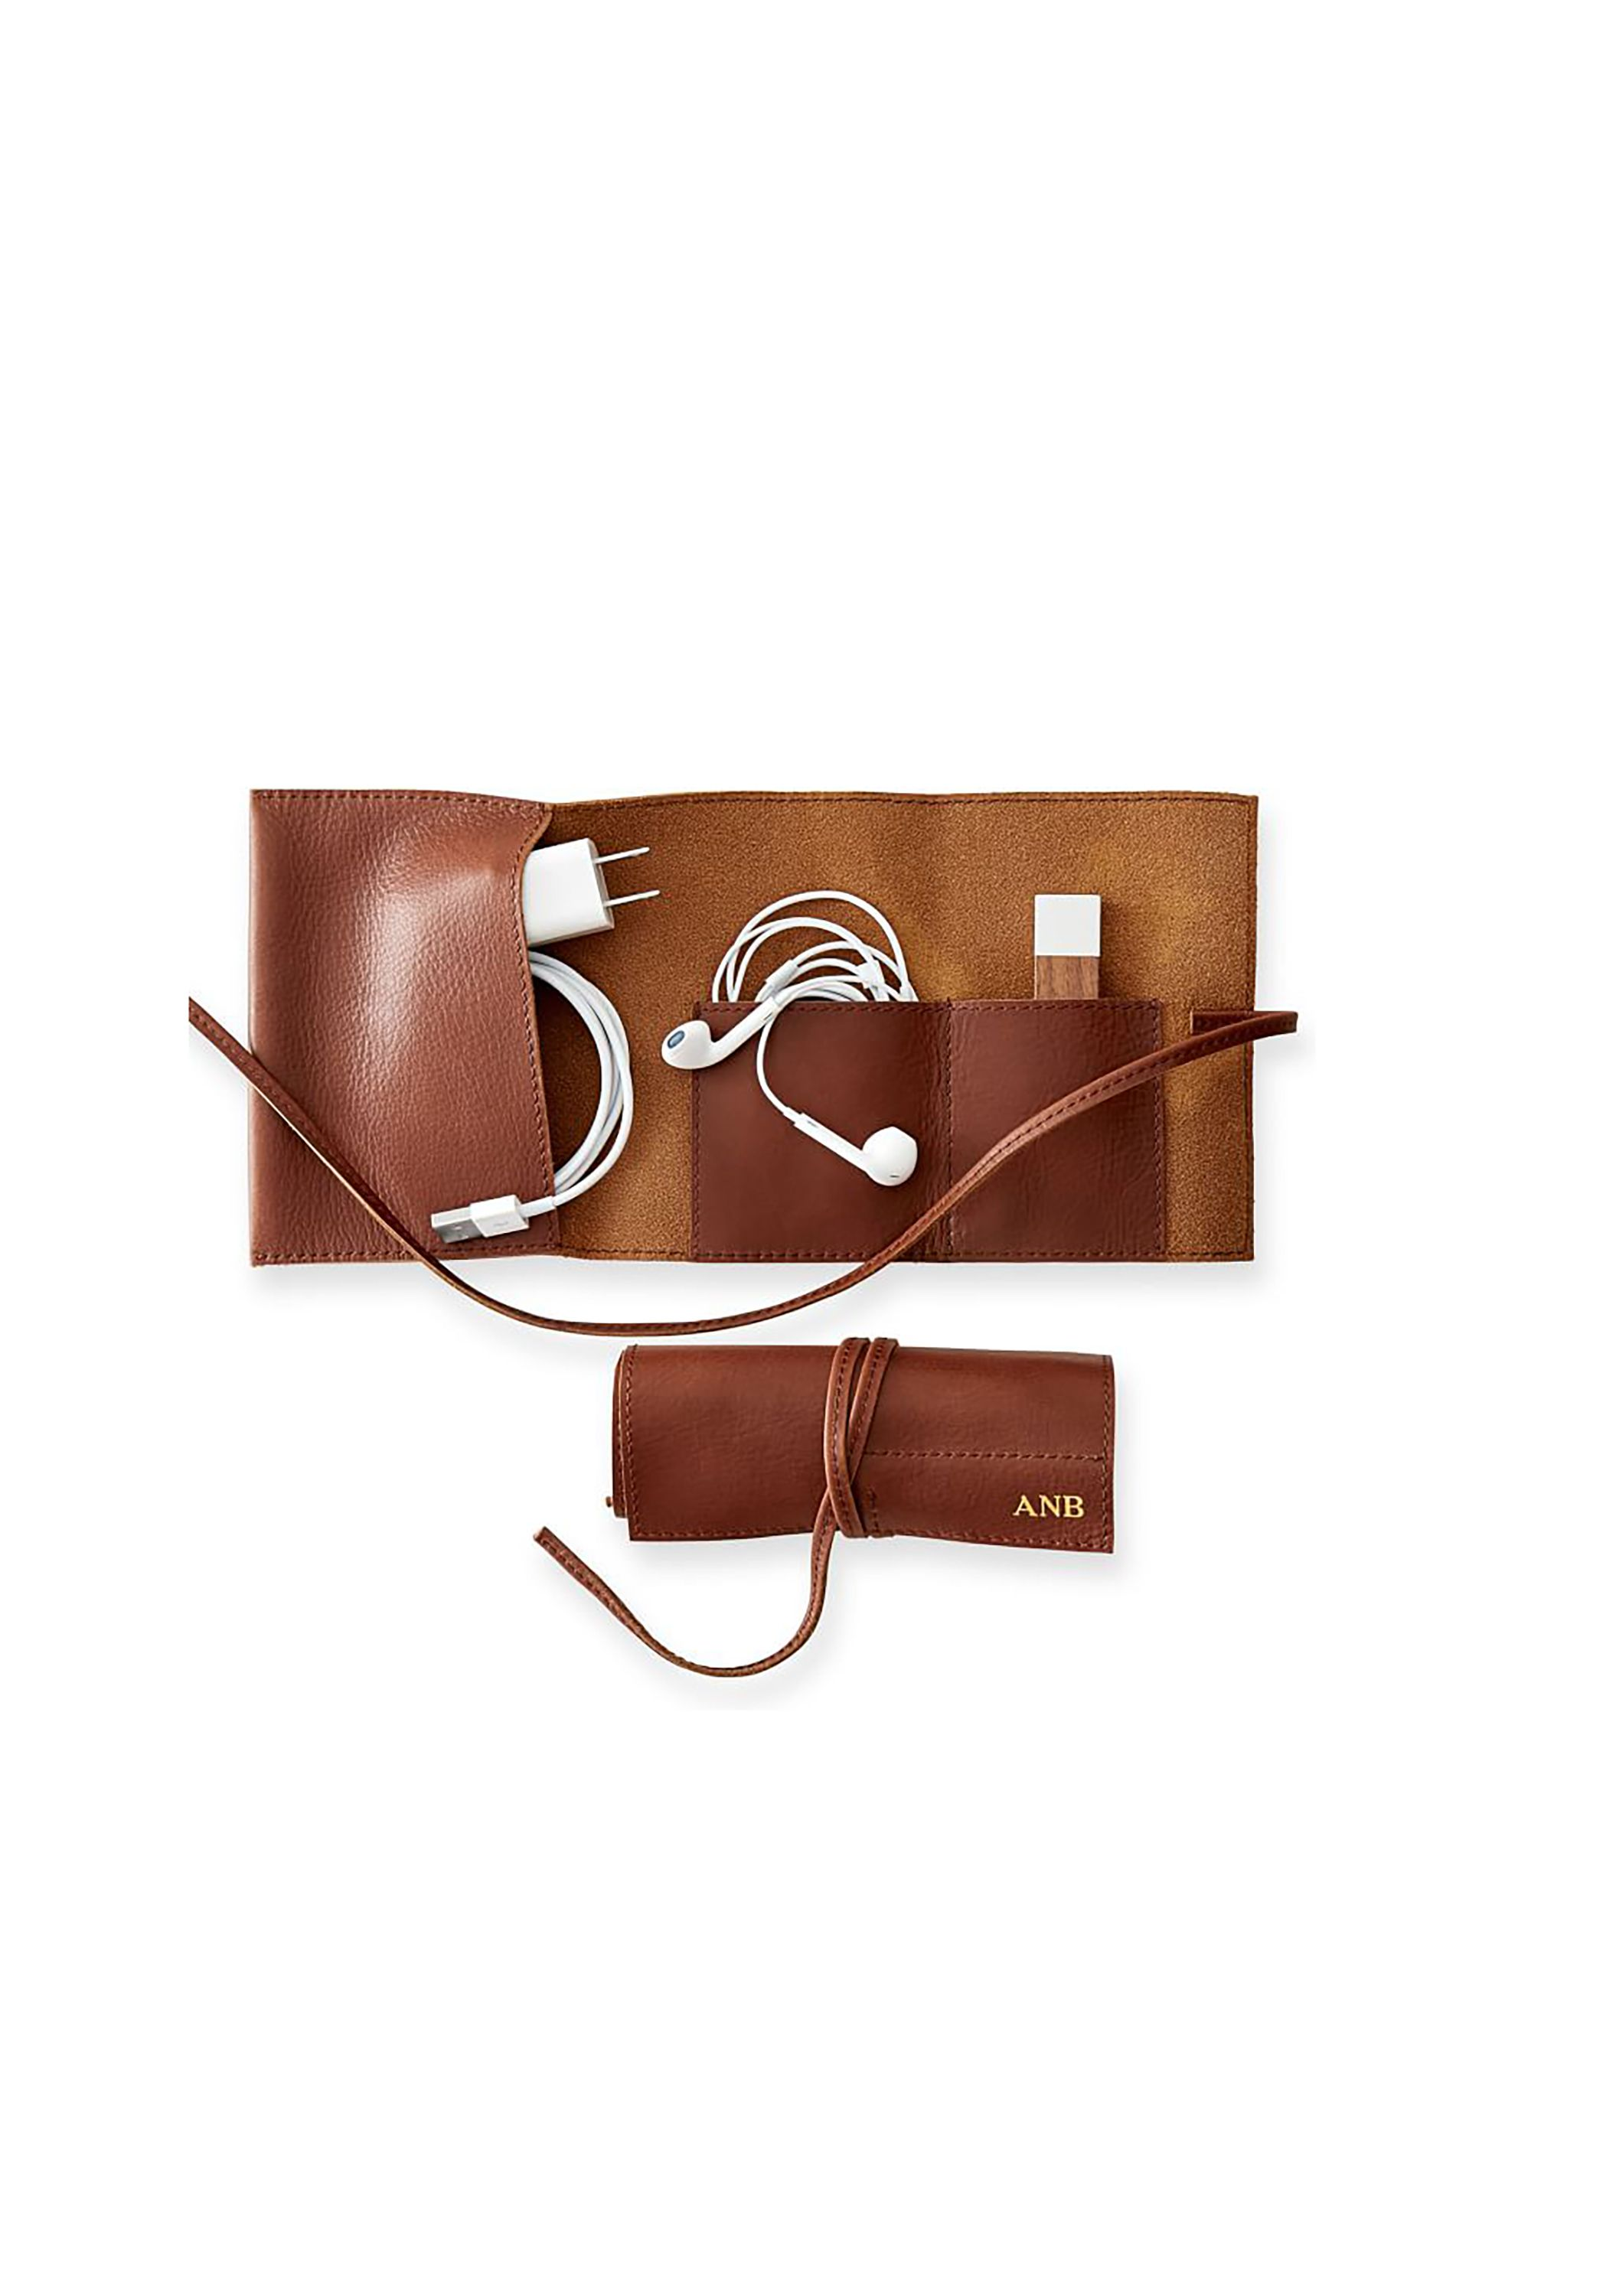 Travel Gifts for Her - Leather Charger Roll Up  sc 1 st  Womanu0027s Day & 26 Best Travel Gifts for Her - Unique Christmas Gift Ideas for Travelers